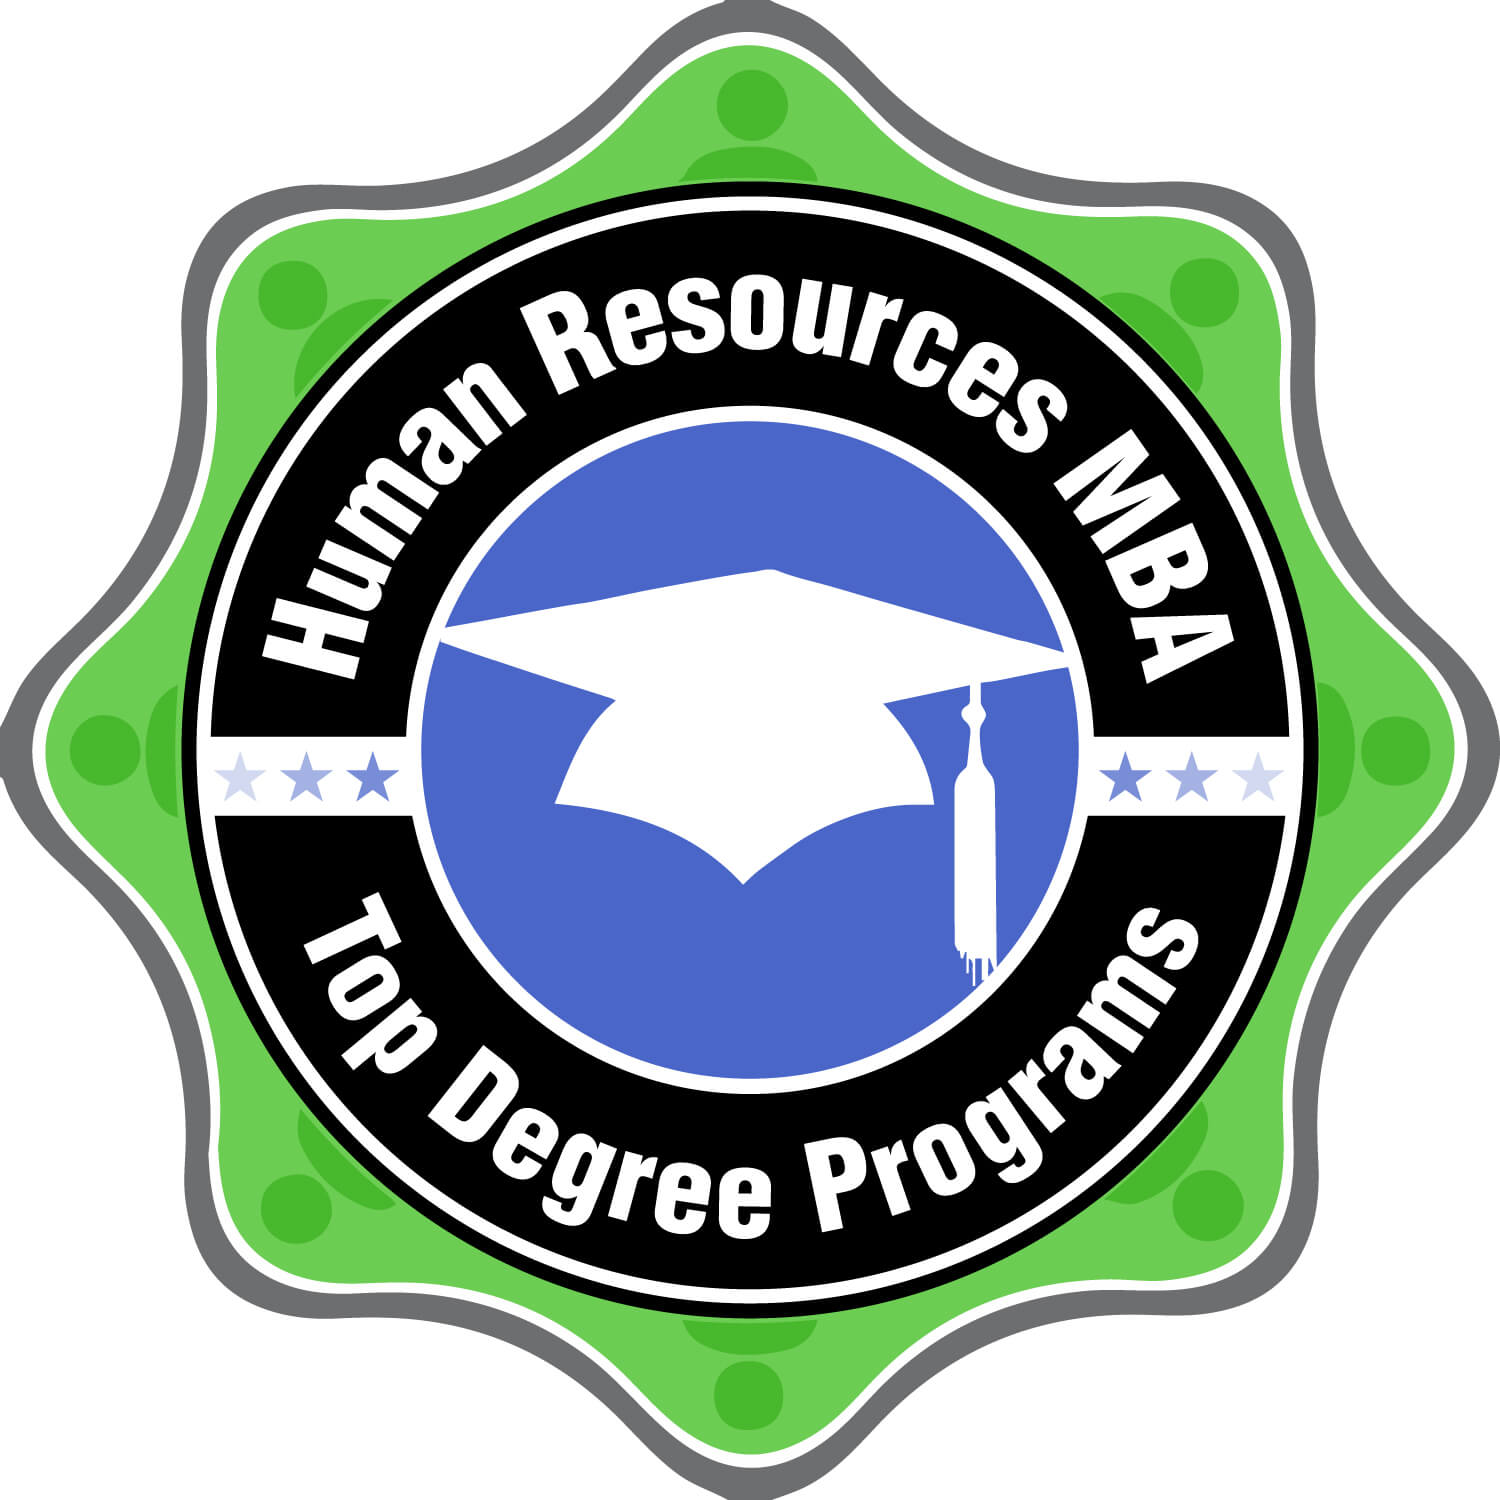 2019 graduate development programme in clipart png black and white stock 20 Best Master\'s in Human Resources (Campus-based) 2019 - Human ... png black and white stock